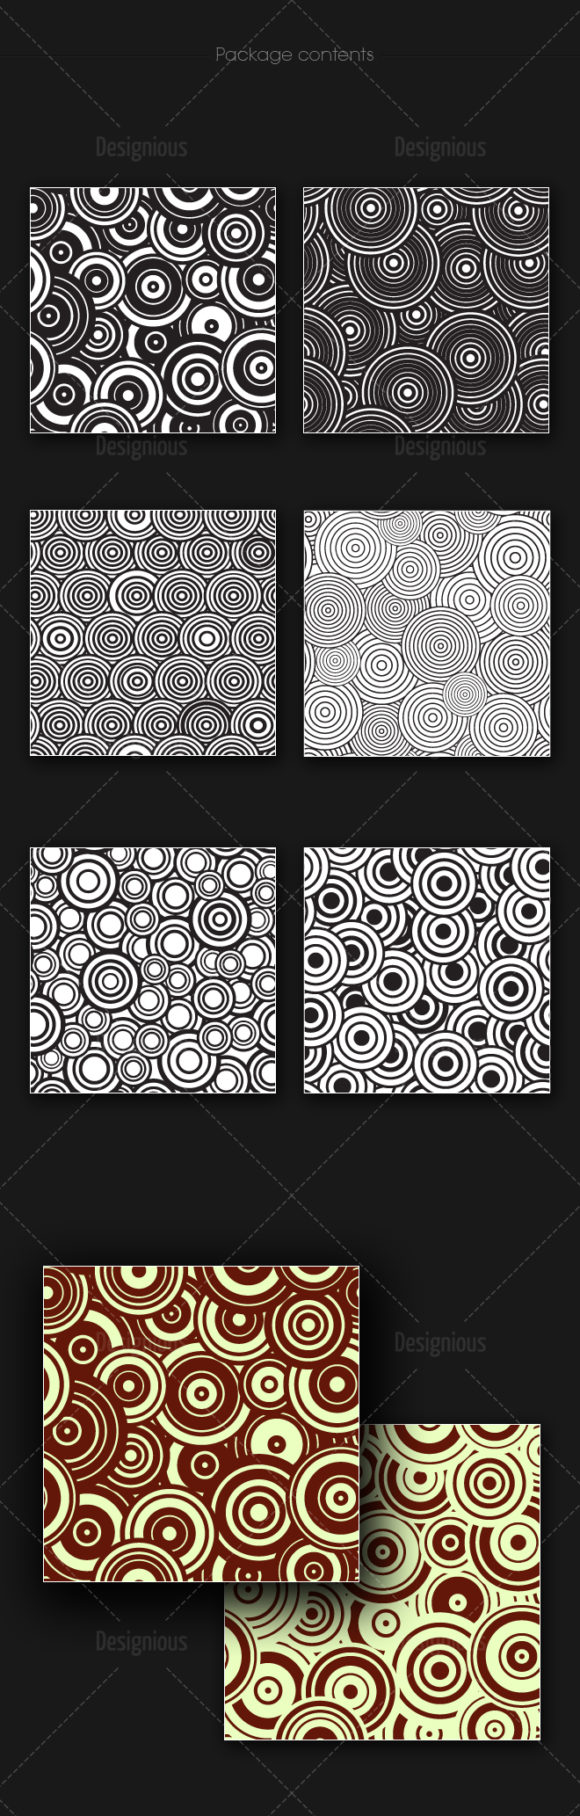 Seamless Patterns Vector Pack 161 products designious vector seamless 161 large